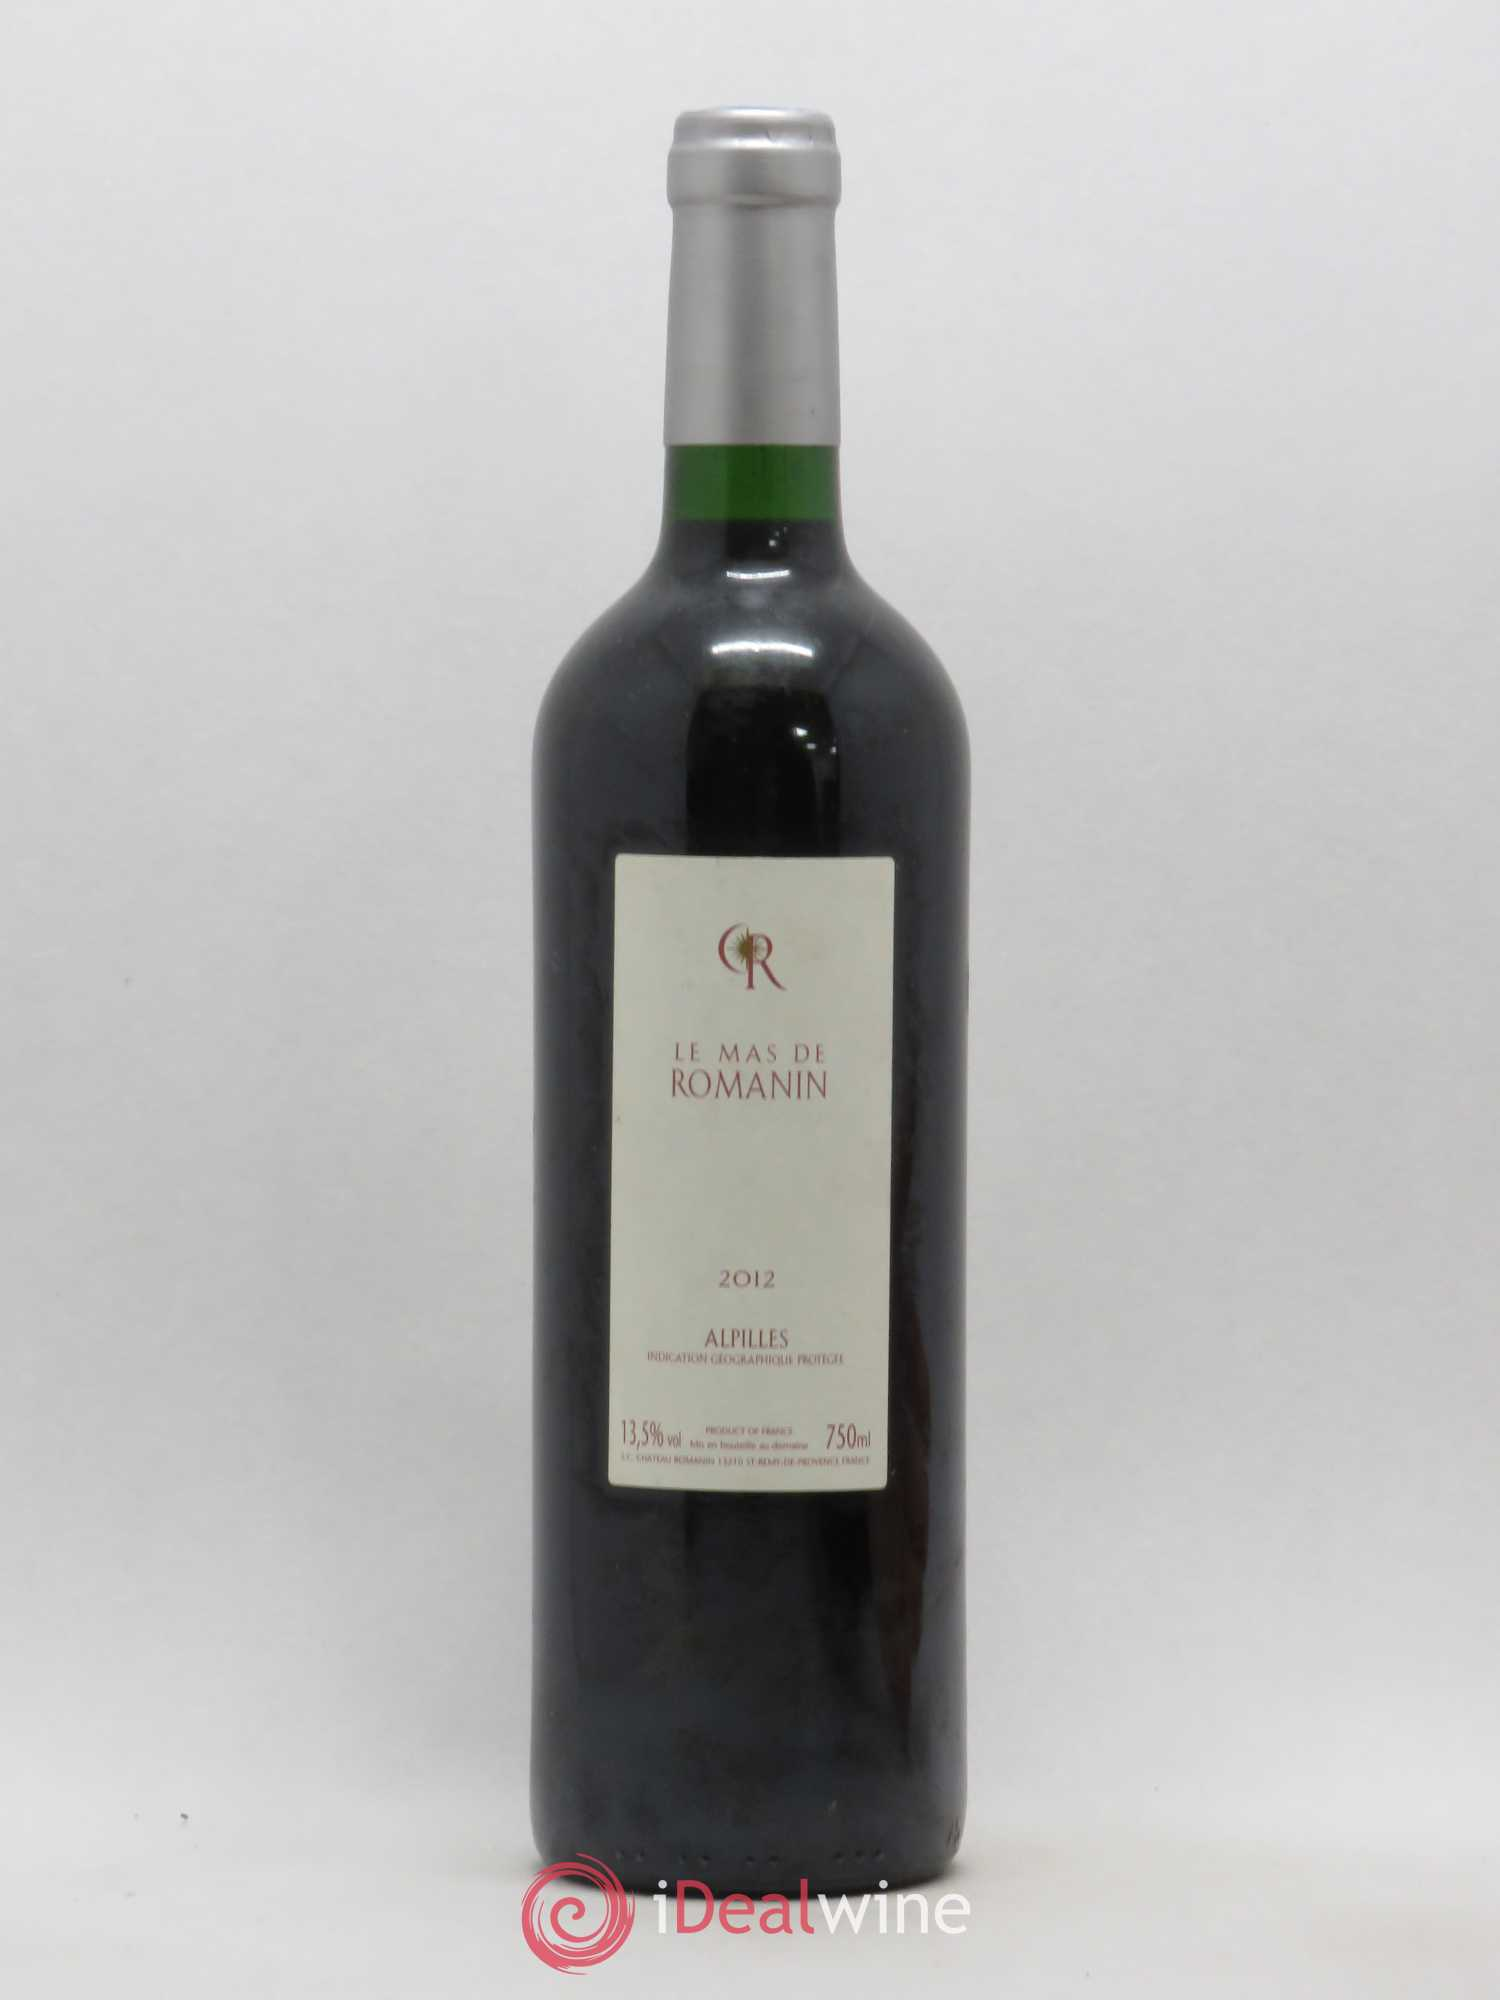 IGP Alpilles Le Mas de Romanin Château Romanin (no reserve) 2012 - Lot of 1 Bottle